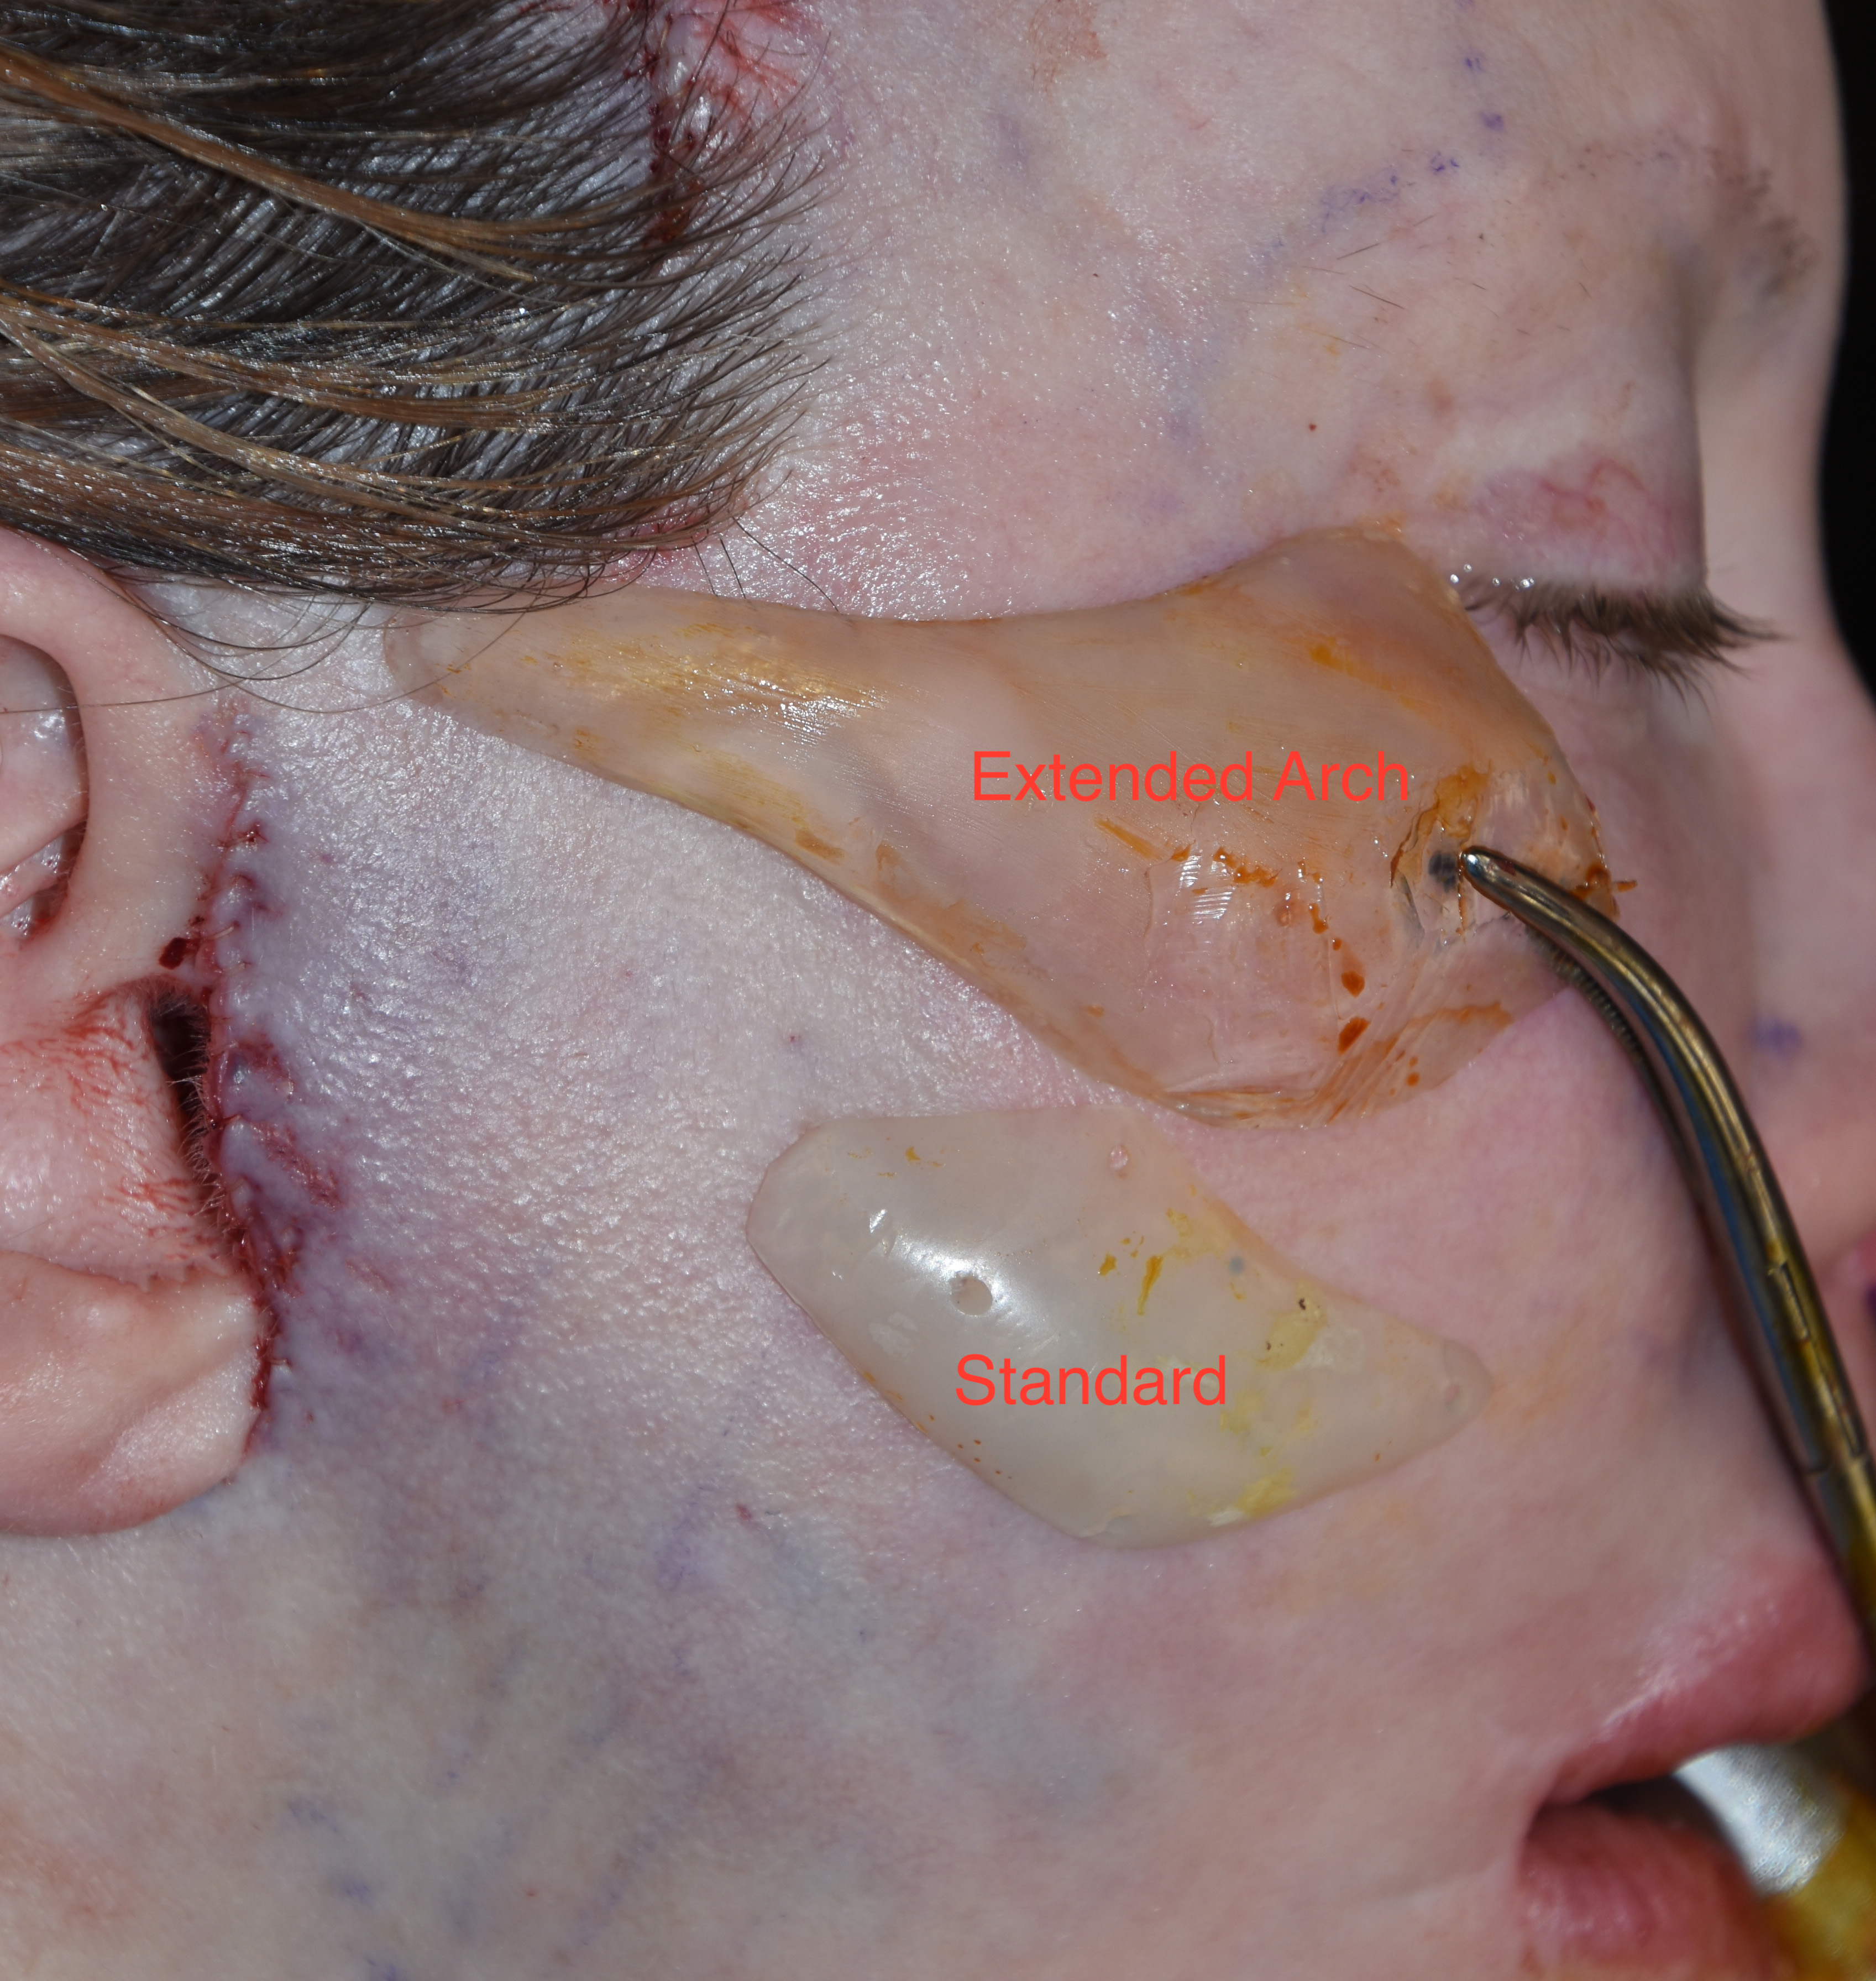 Cheek Implants Photo Gallery - Before and Afters